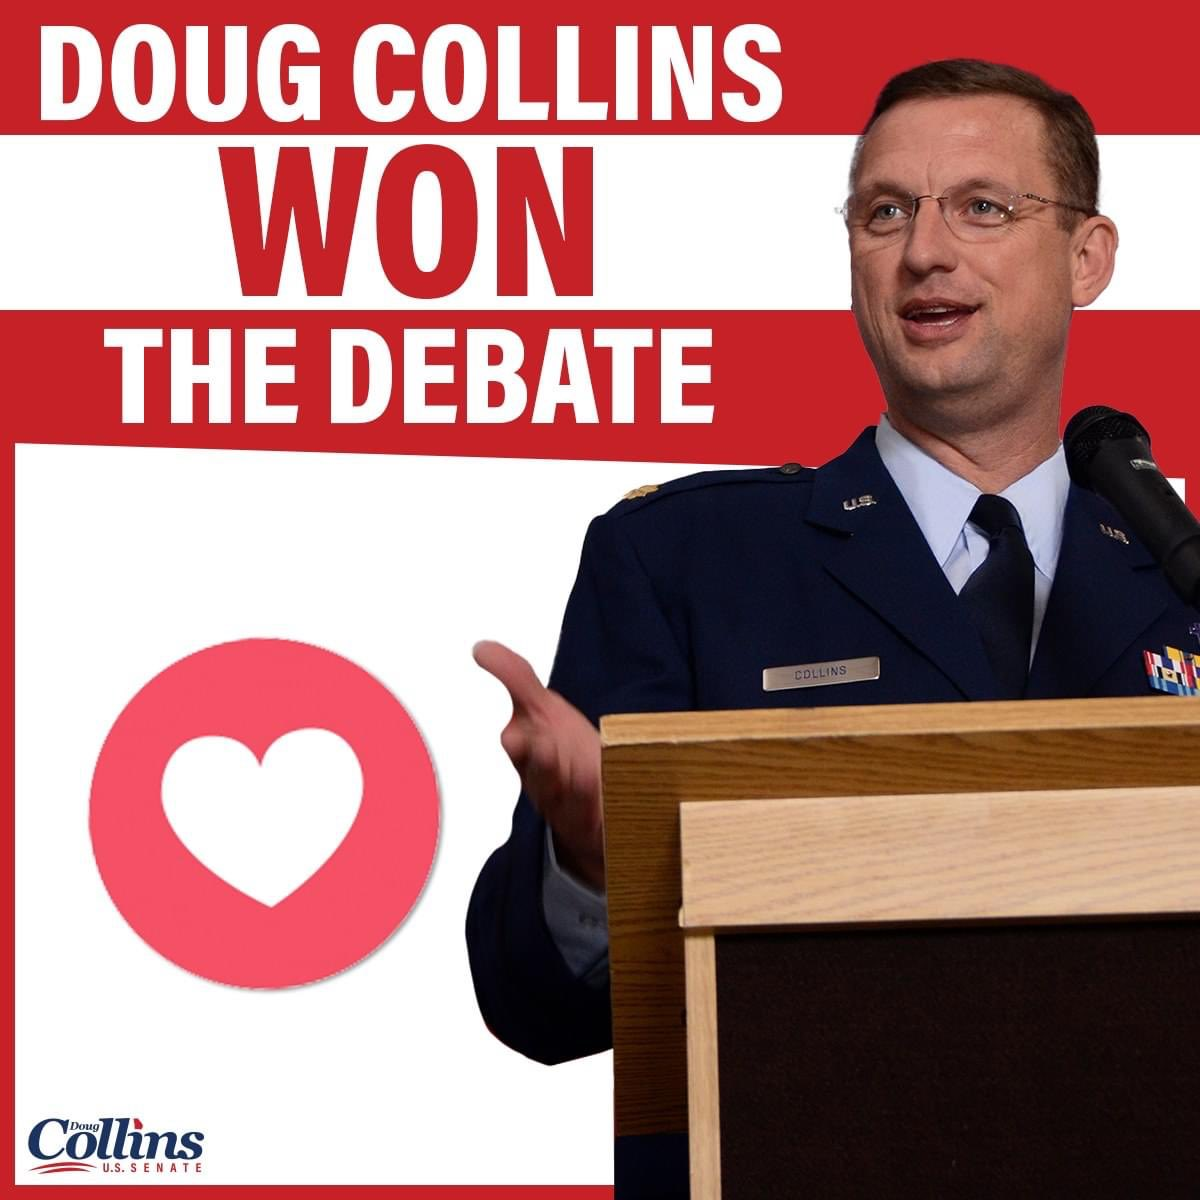 Over and over @RepDougCollins uses his uniform in campaign ads. It's against military regs and the Hatch Act. He's been told to stop and won't. It's ridiculous politicalization of the military. If that's all you've got Doug..go home and be a chaplain full time. #LincolnProject https://t.co/teBgcD9Tro